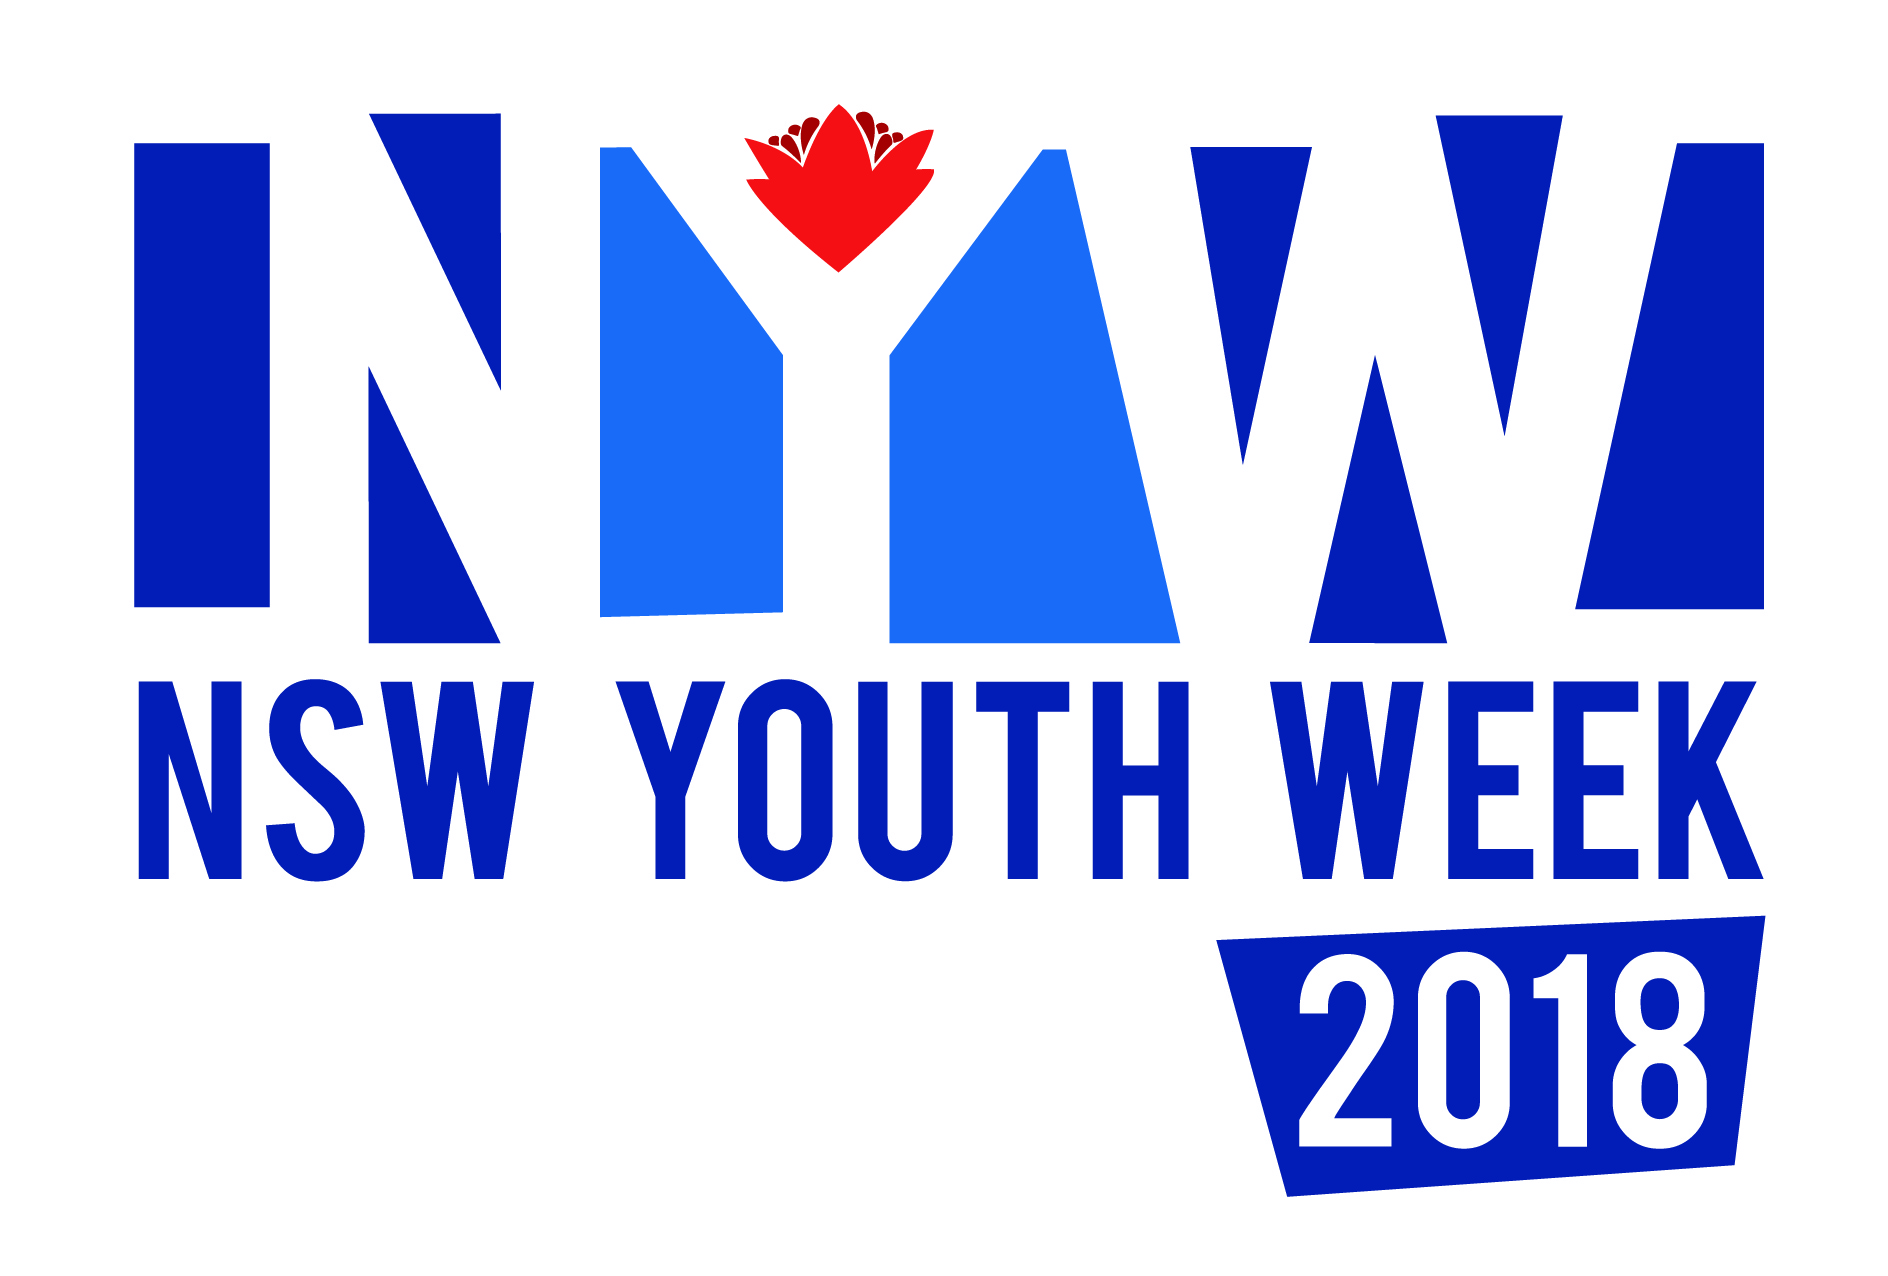 NSW_Youth_Week_2018_Logo_JPG